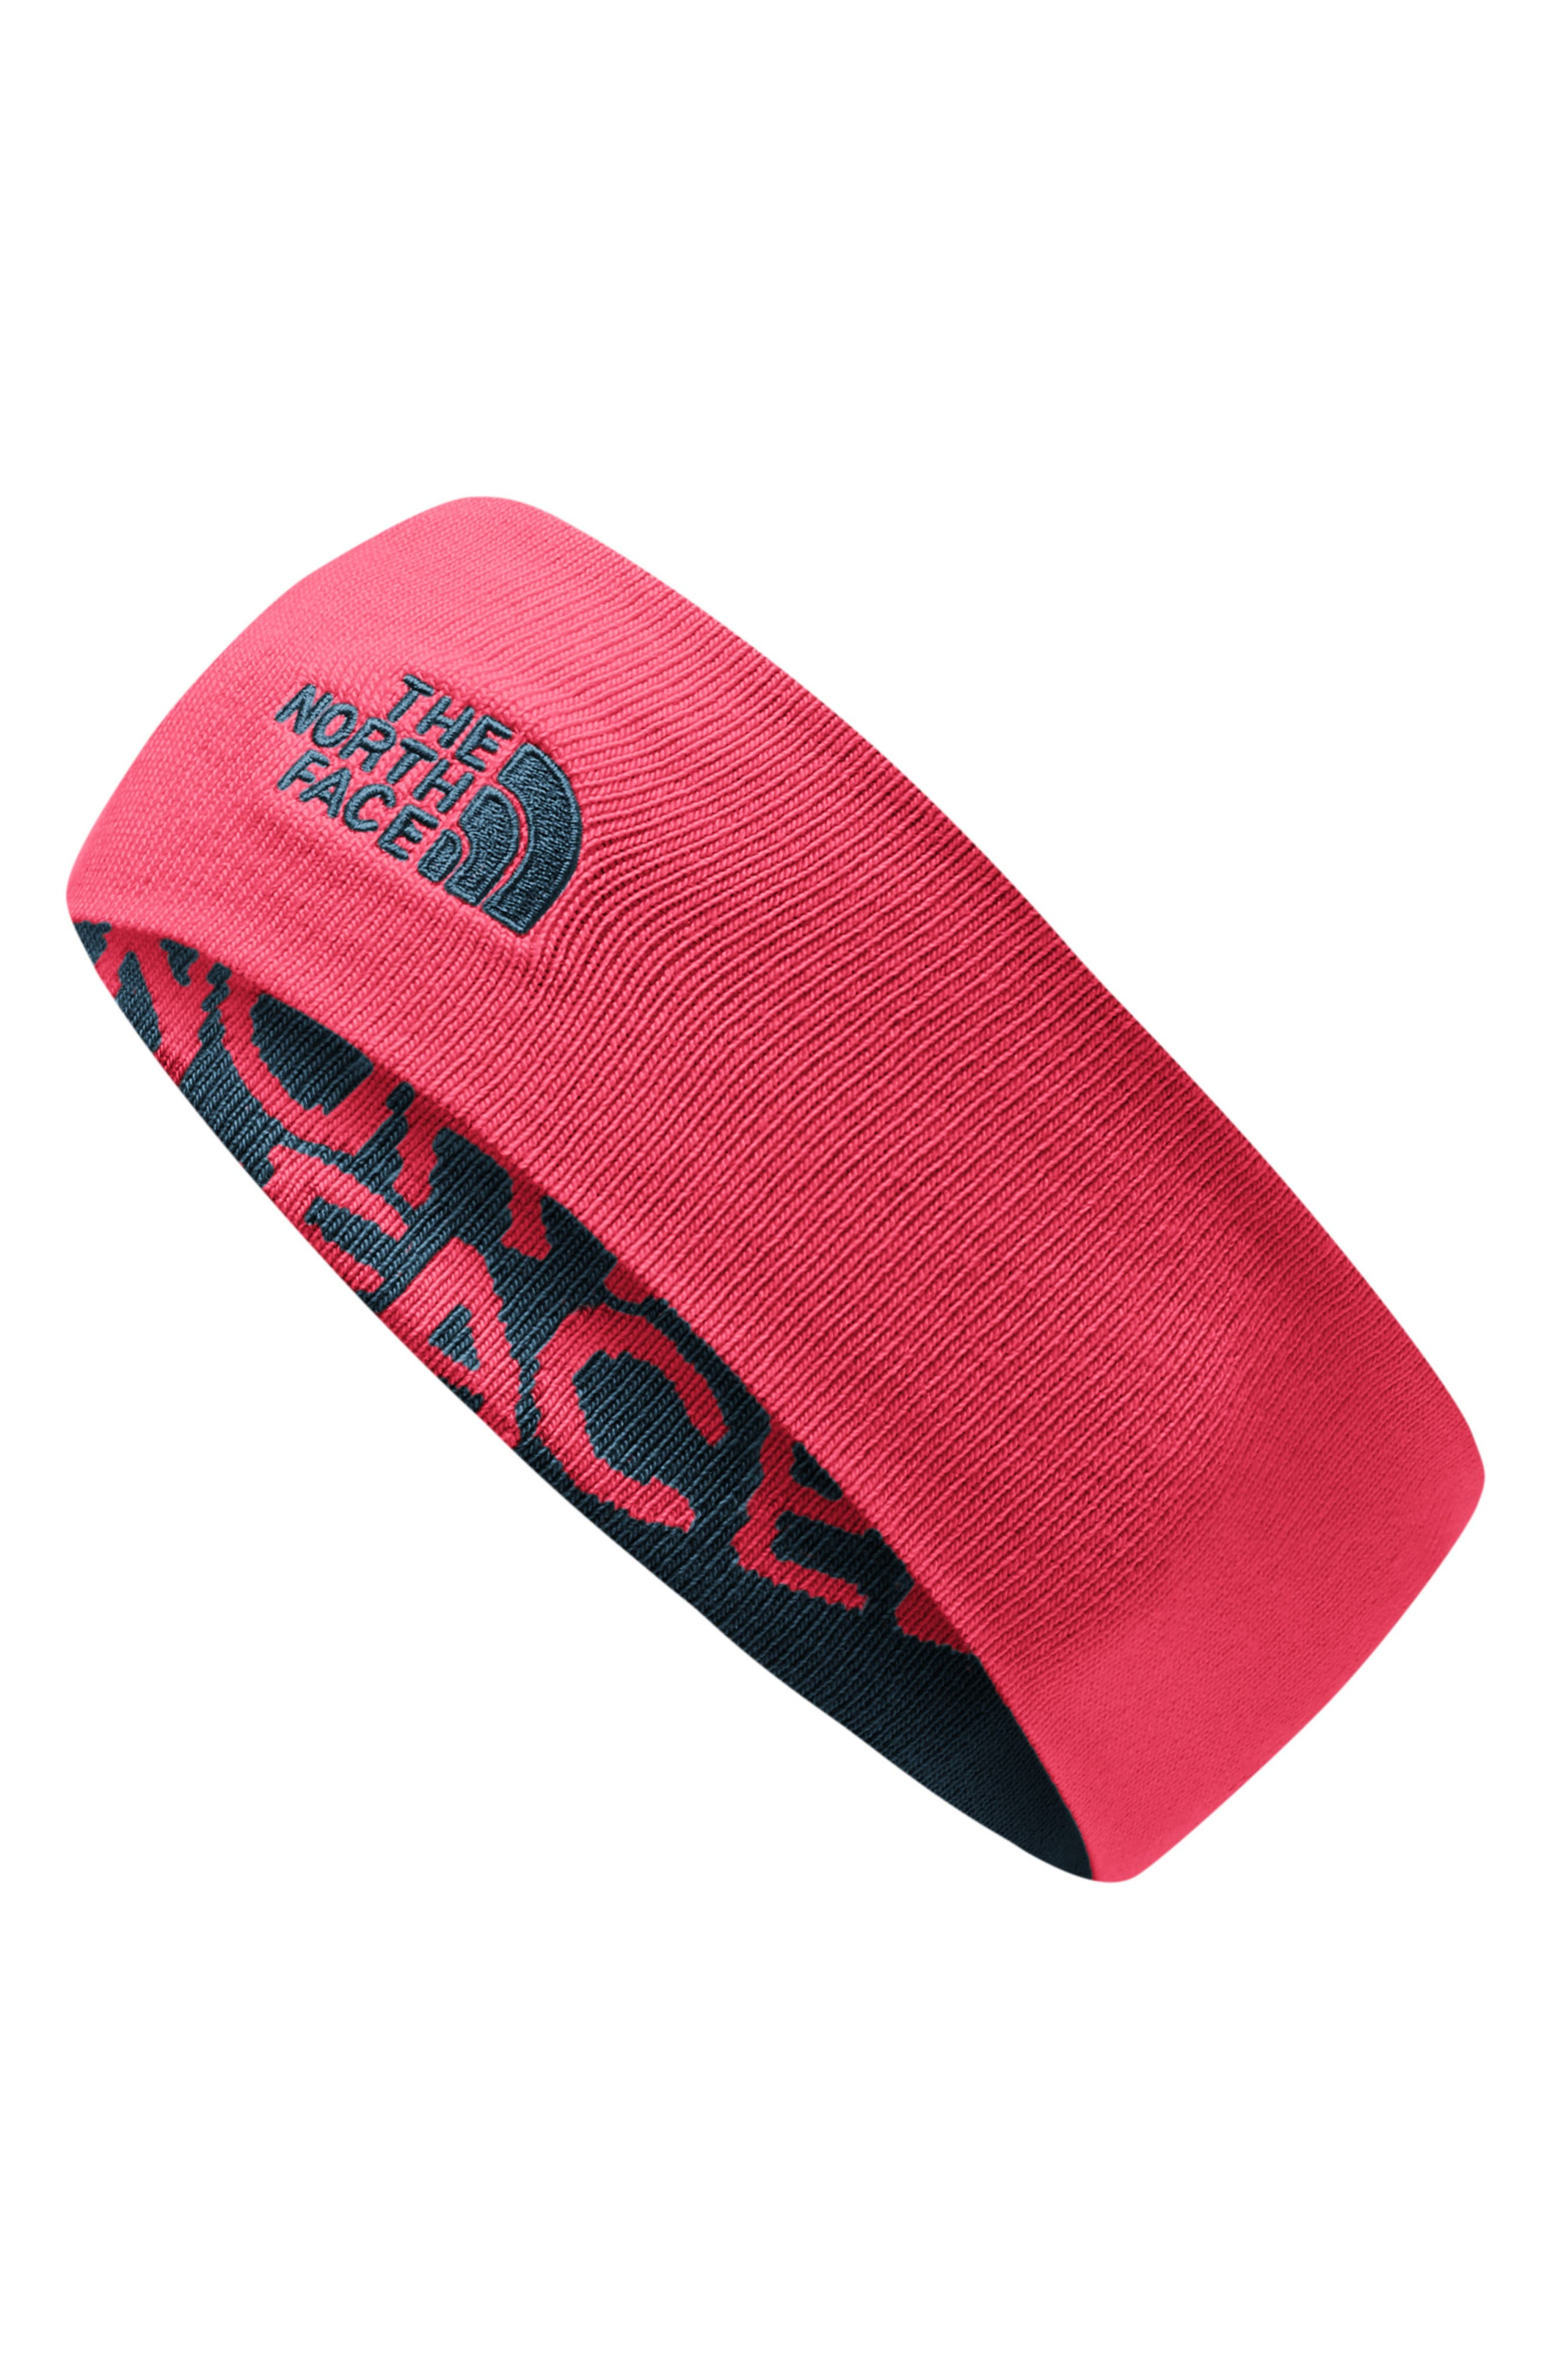 THE NORTH FACE,                             Chizzler Headband,                             Alternate thumbnail 2, color,                             401